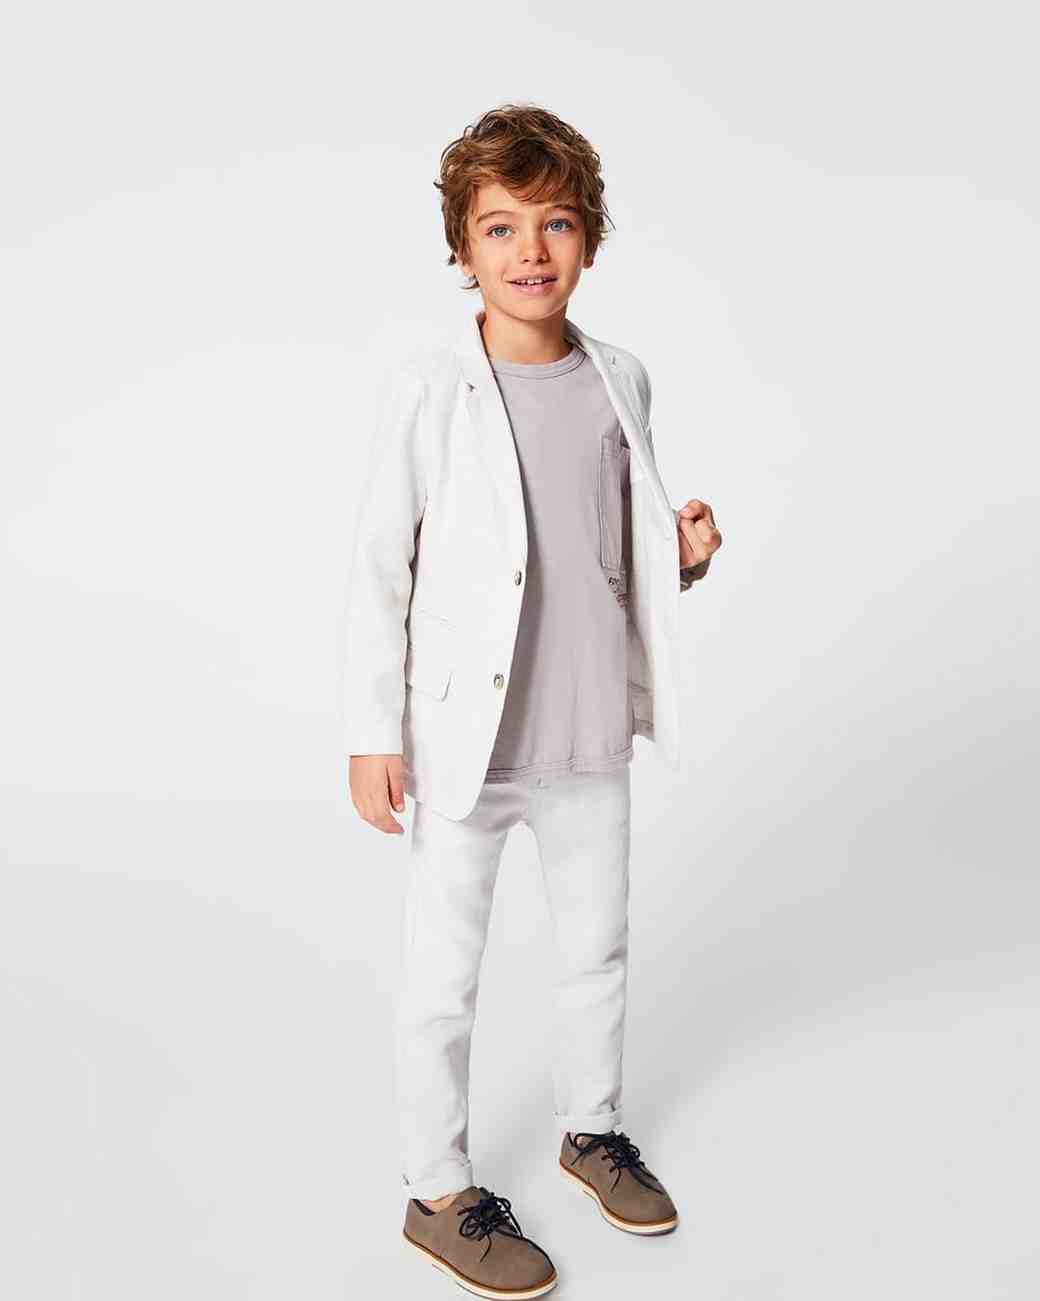 Summer Ring Bearer Attire, White Zara Suit